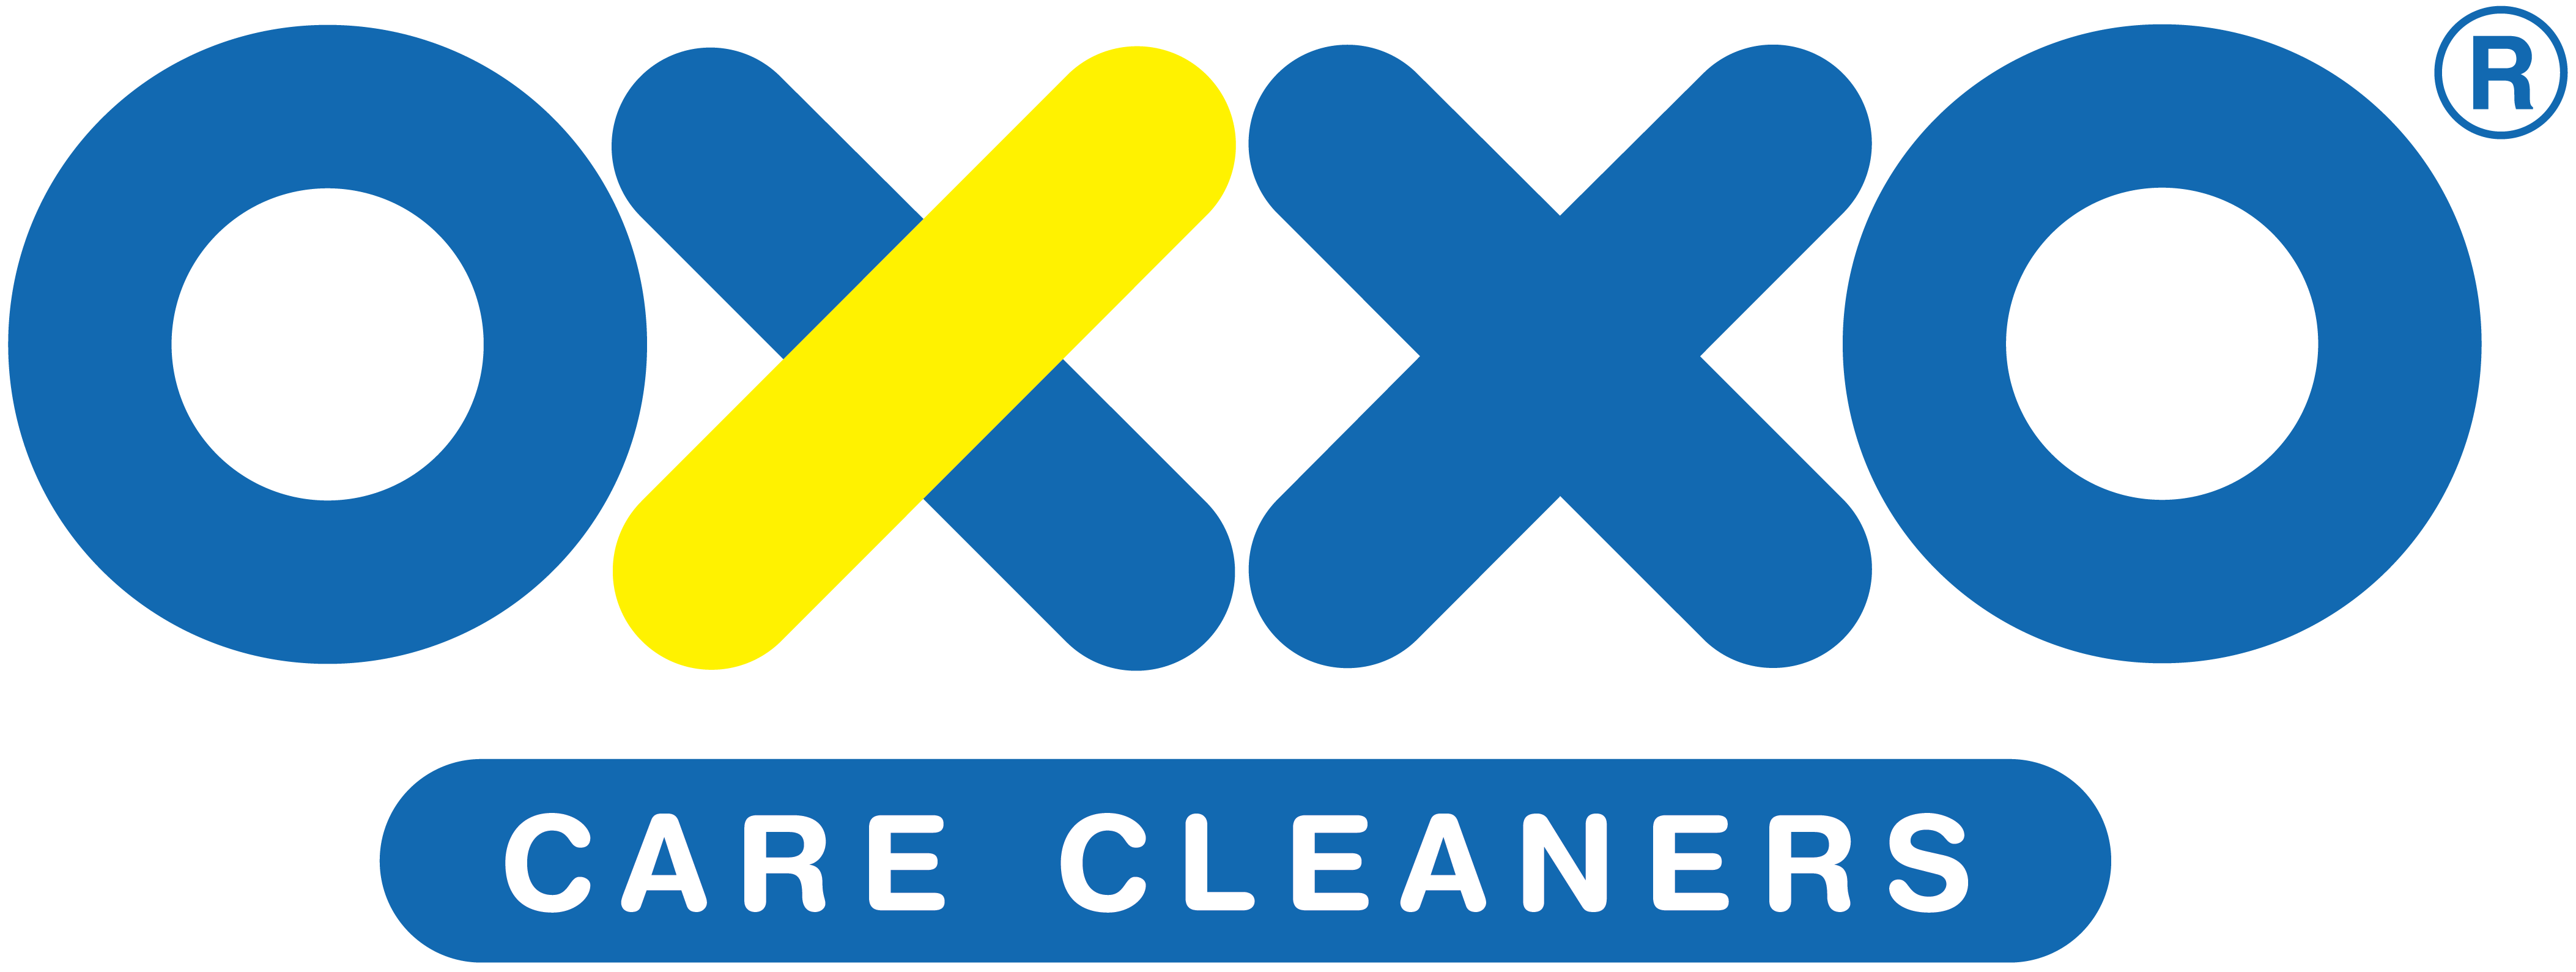 Oxxo Care Cleaners Franchise